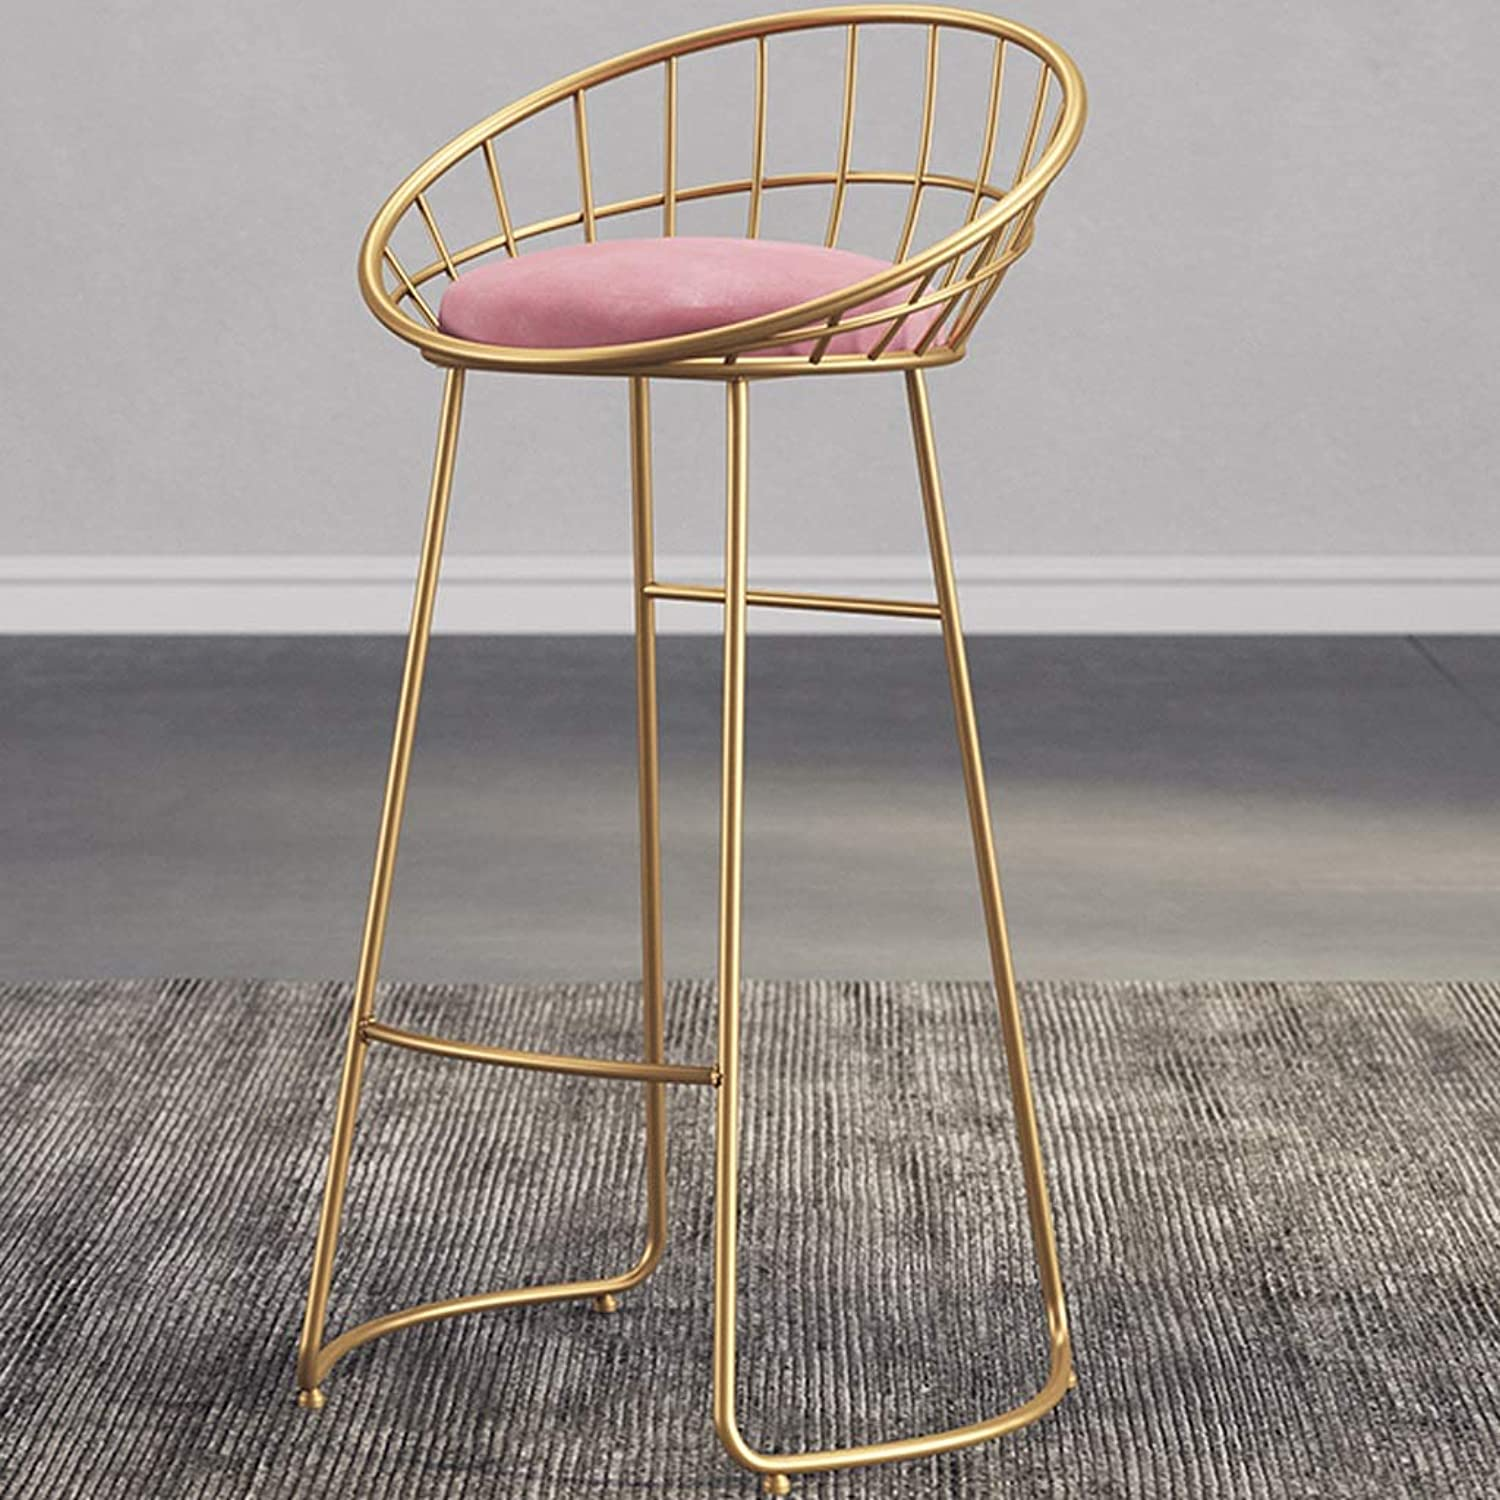 Hzpxsb Nordic High Stool Modern Dining Chair Iron Wire Chair Simple Bar Stool Leisure Chair Bar Stool (color   gold)